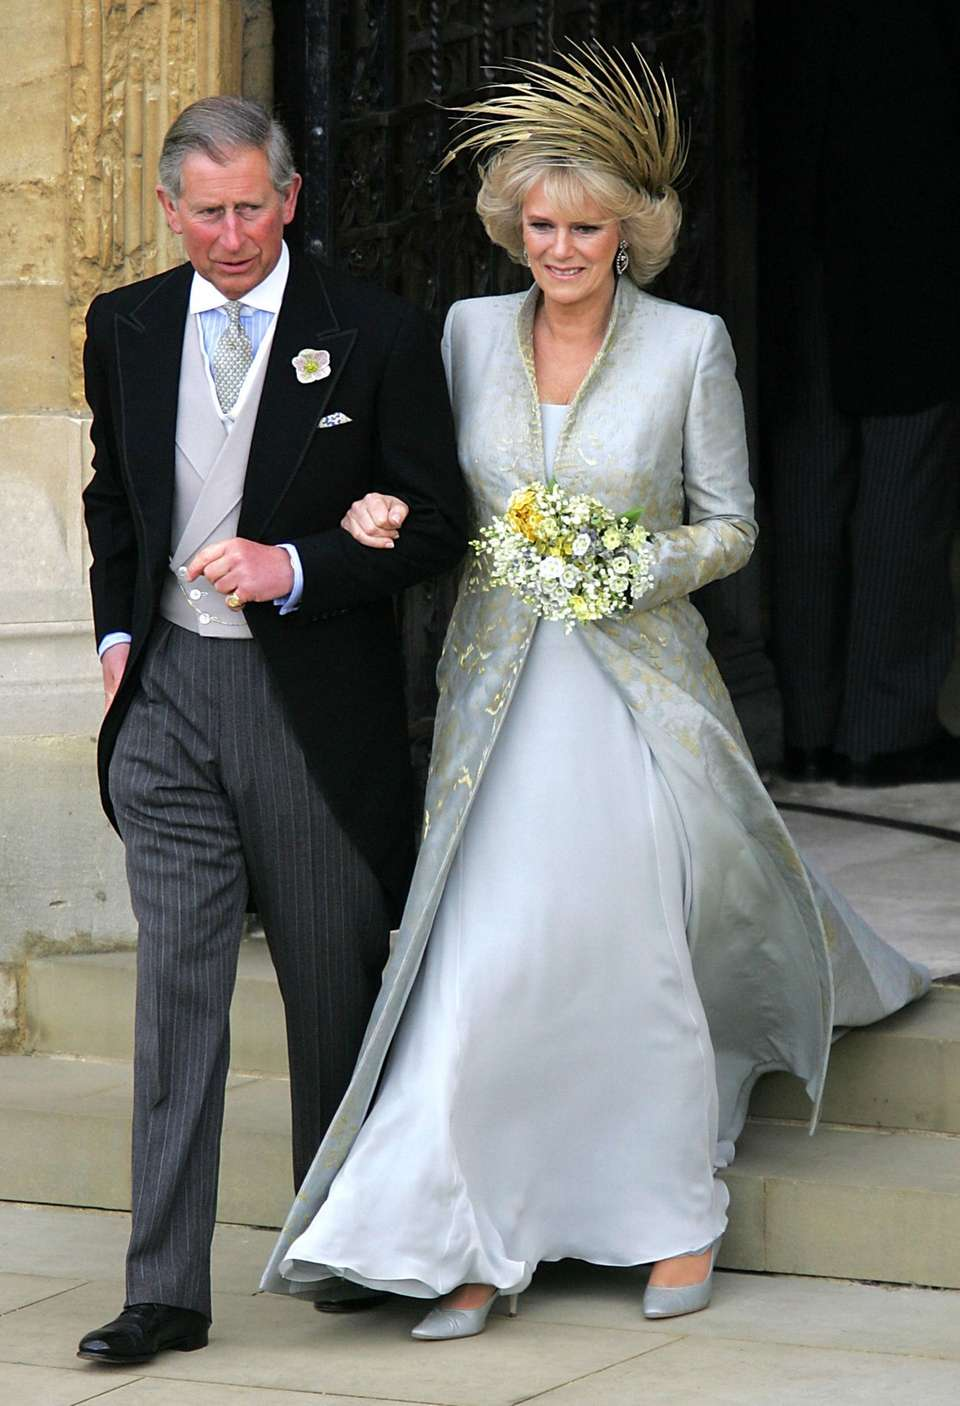 Prince Charles and Camilla, Duchess of Cornwall, leave